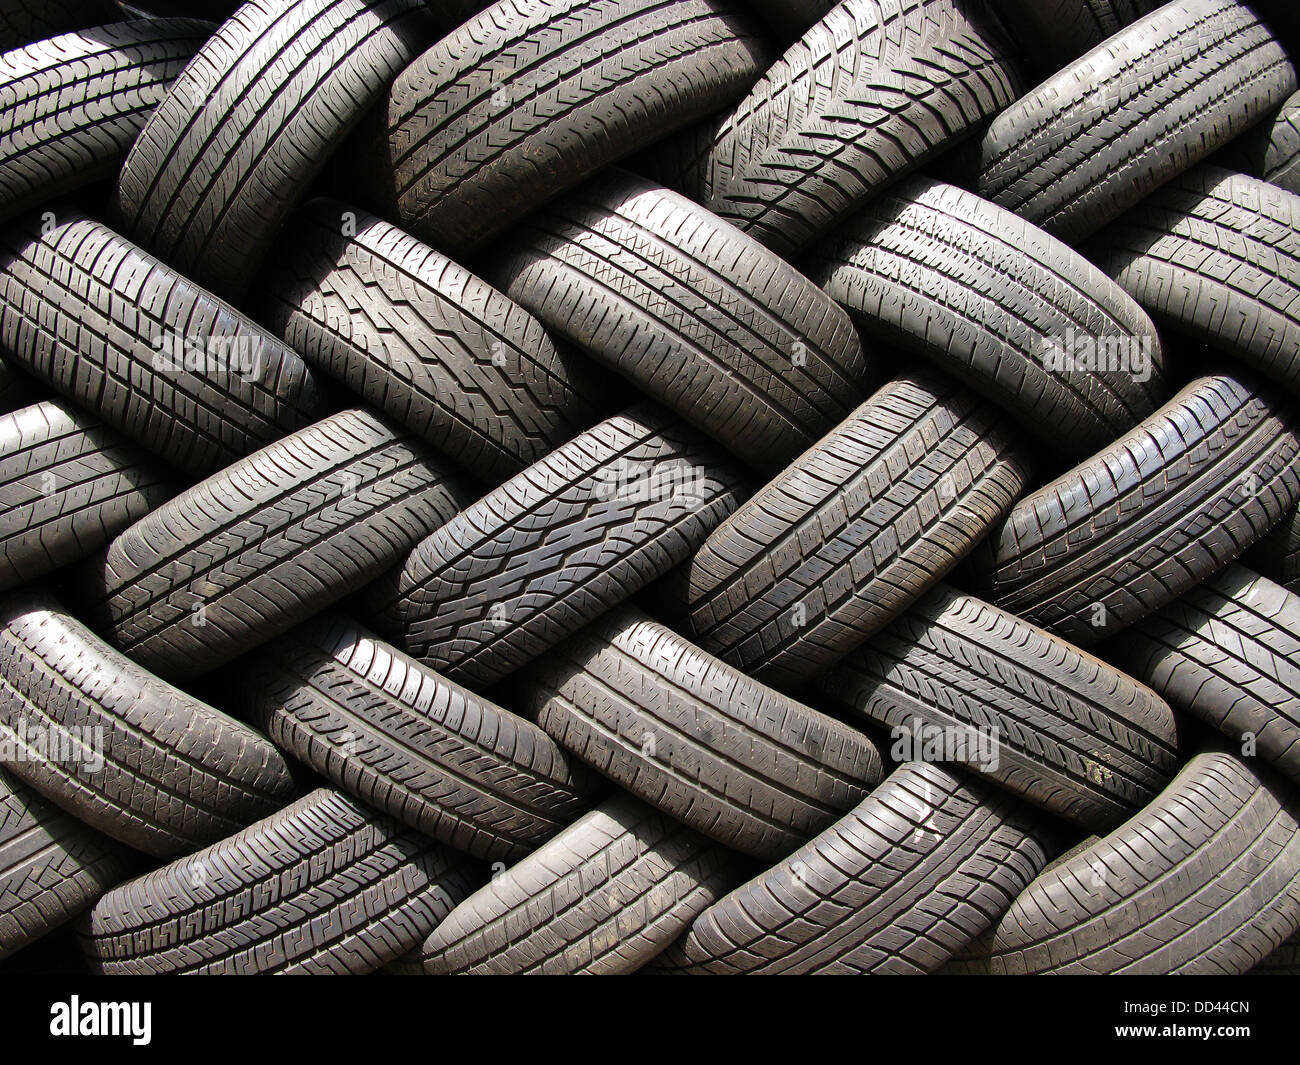 A large stack of used automotive car tires. - Stock Image